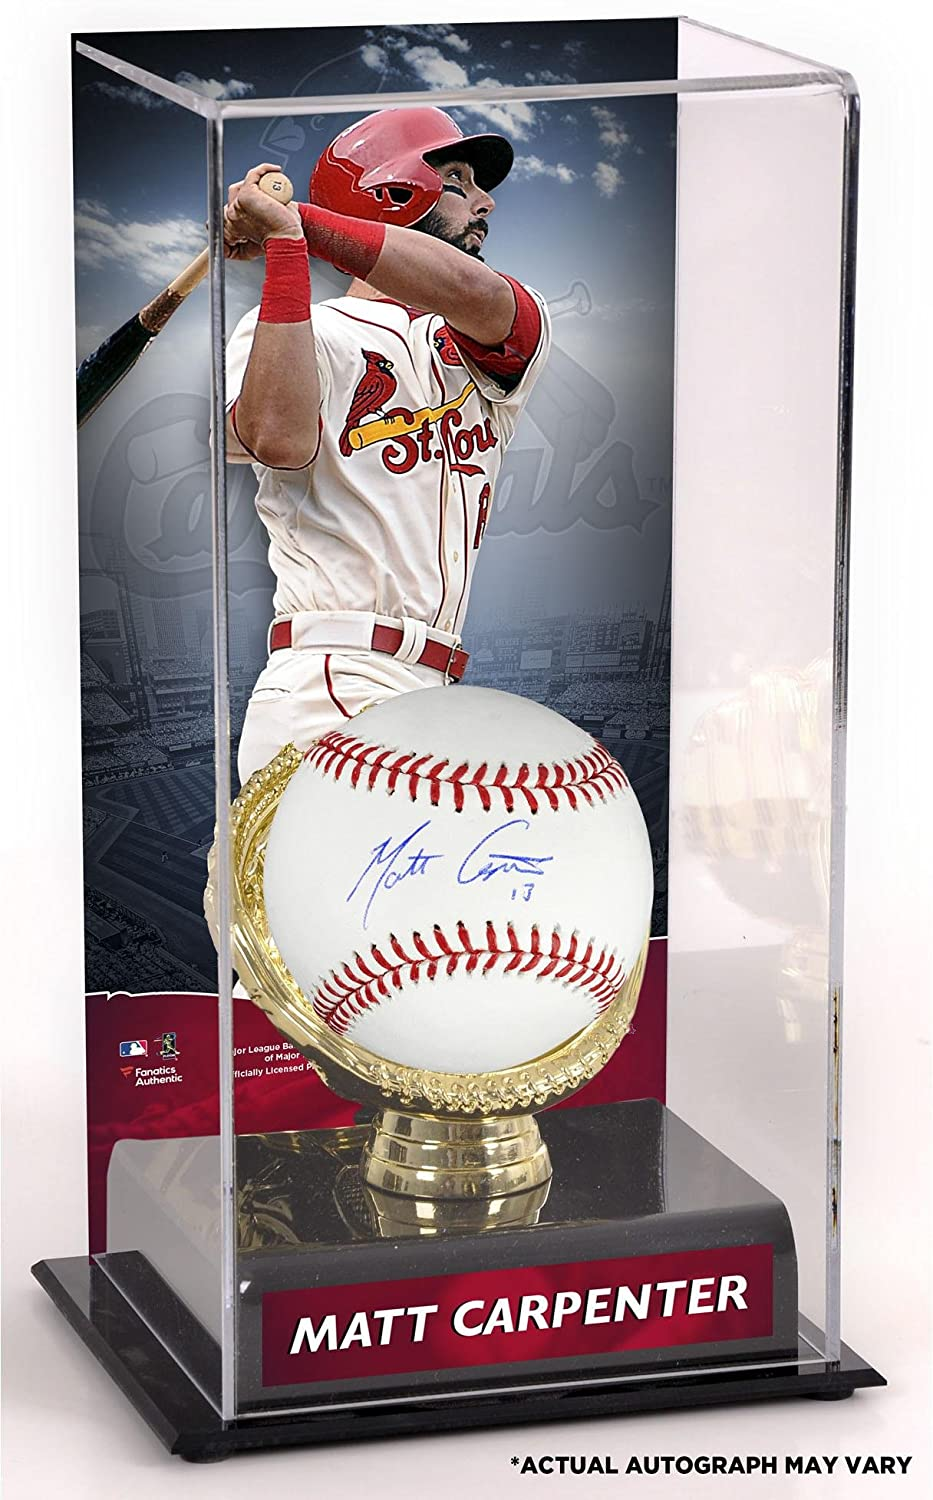 Fanatics Authentic Certified Matt Carpenter St Louis Cardinals Autographed Baseball and Gold Glove Display Case with Image